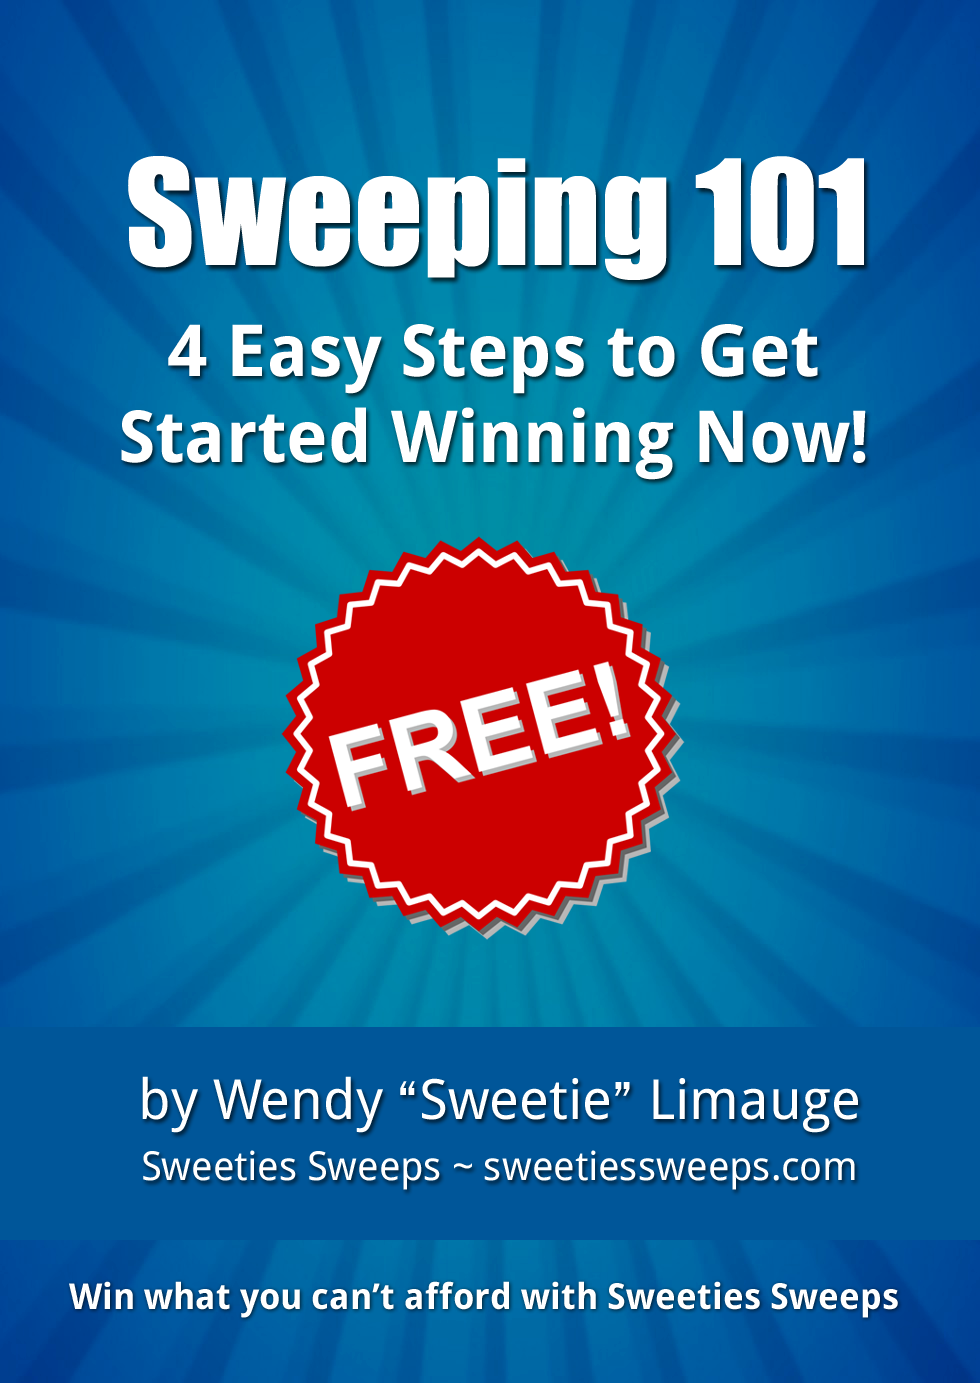 Click Here to download Sweeties Sweeps Sweeping 101 Book for Free